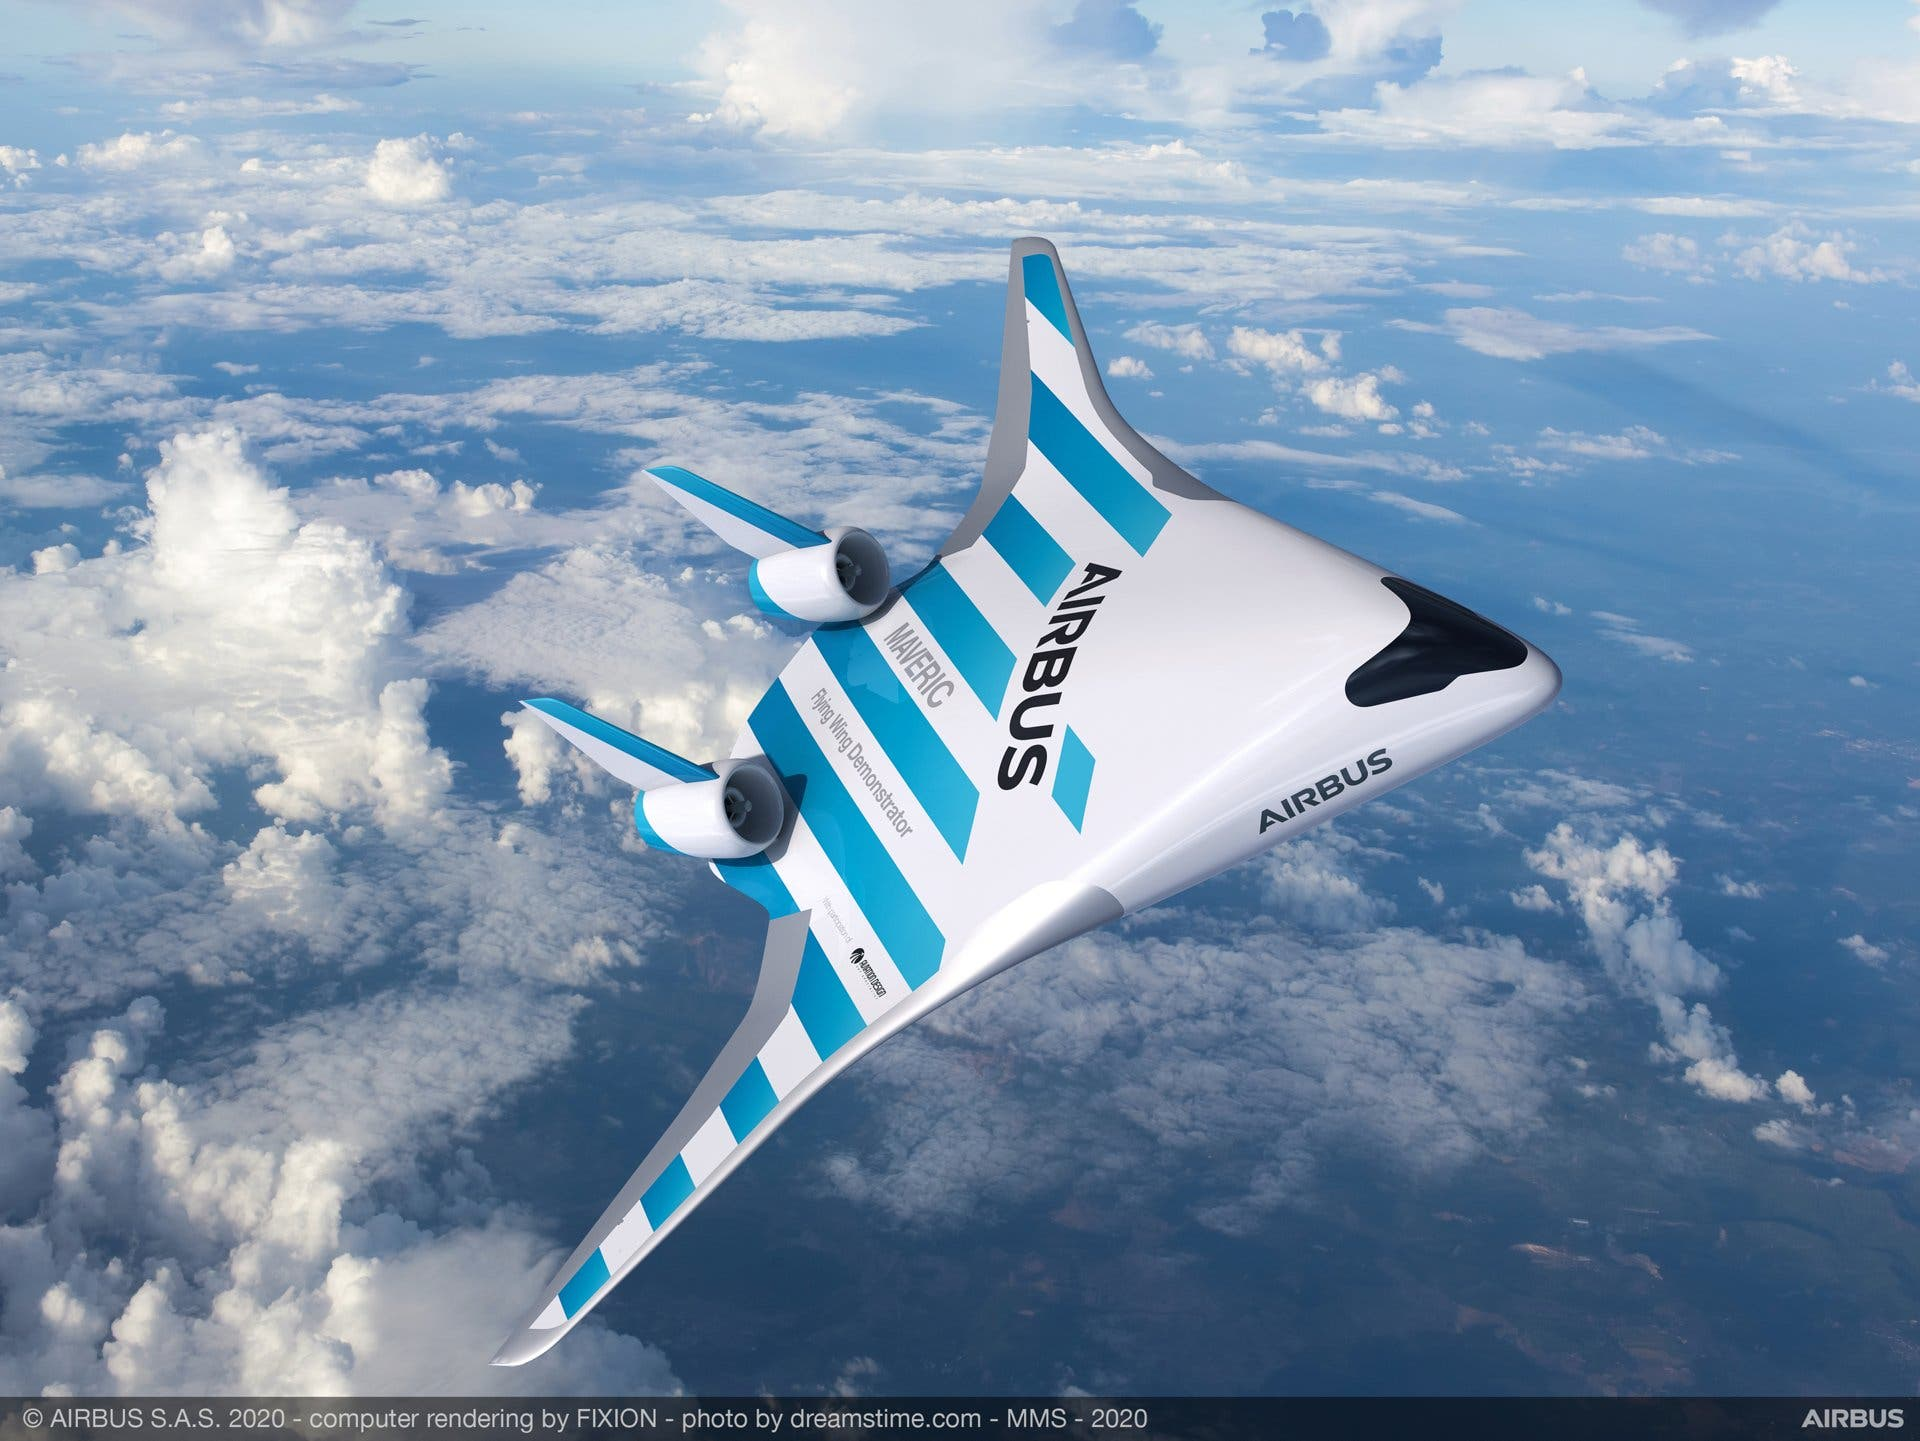 Airbus MAVERIC Design Study Project Is 20% More Efficient Than Today's Airplanes | CleanTechnica